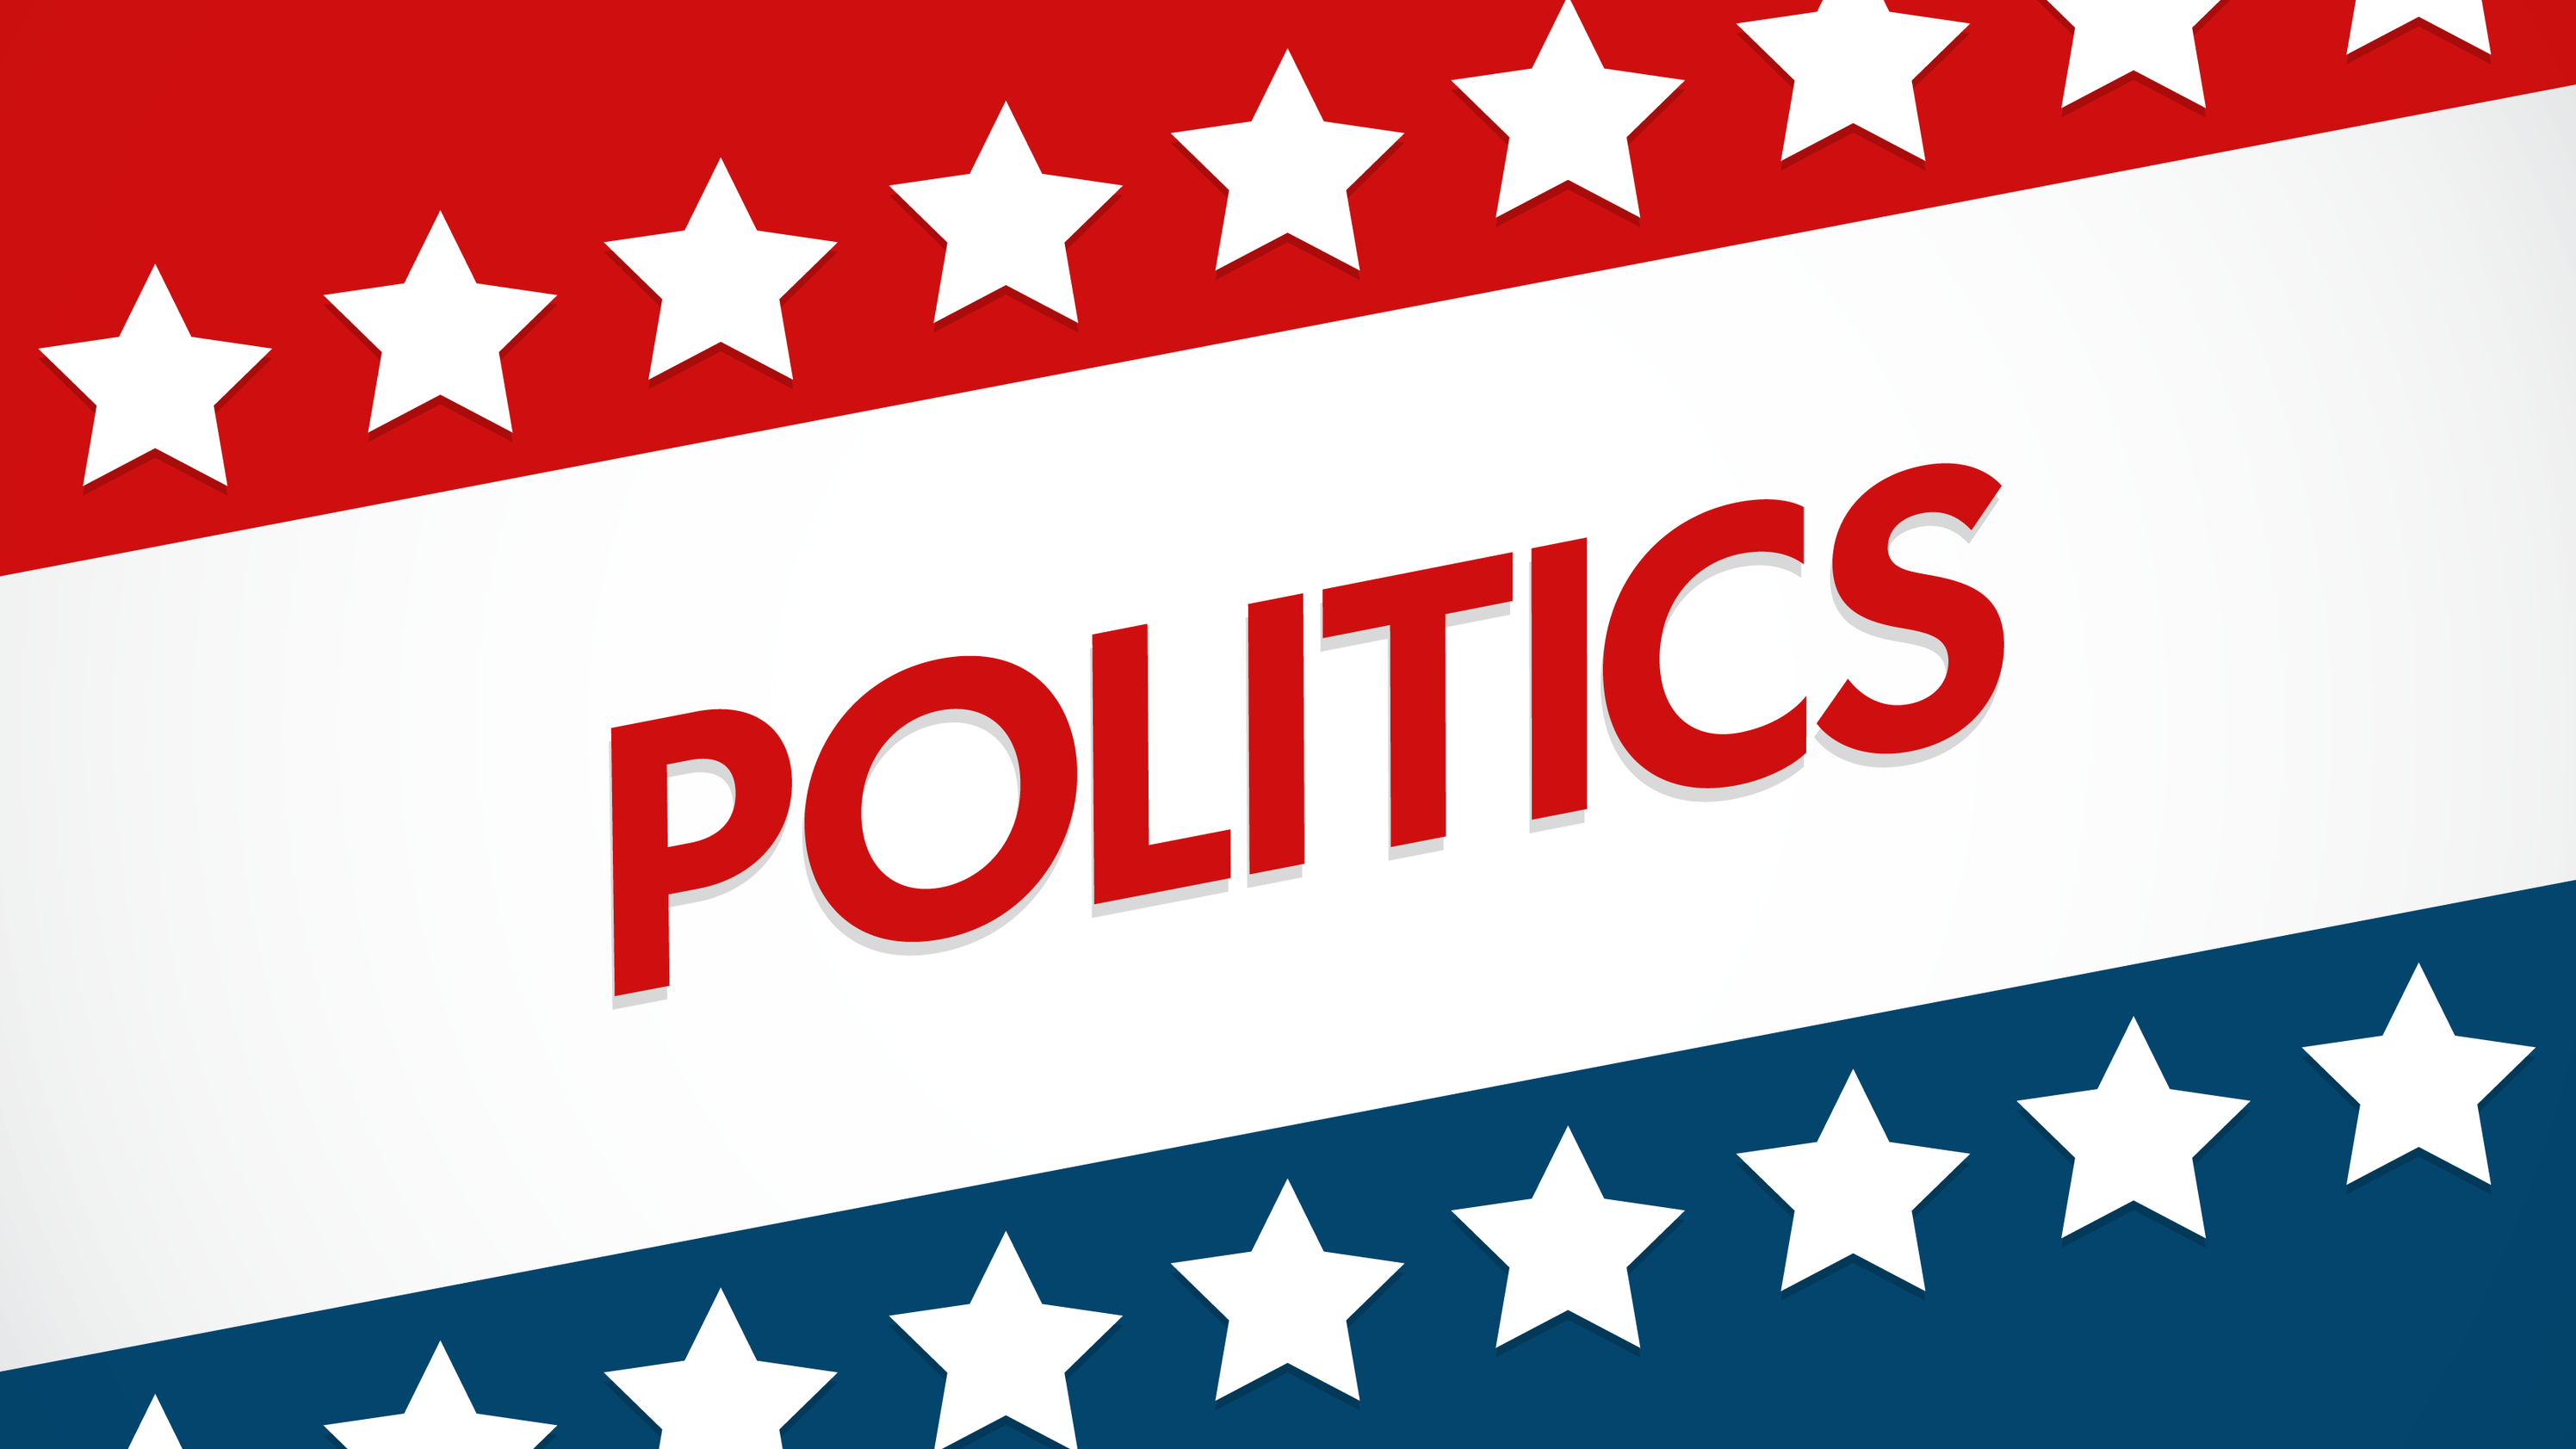 Election results for key races throughout Chillicothe Ross County